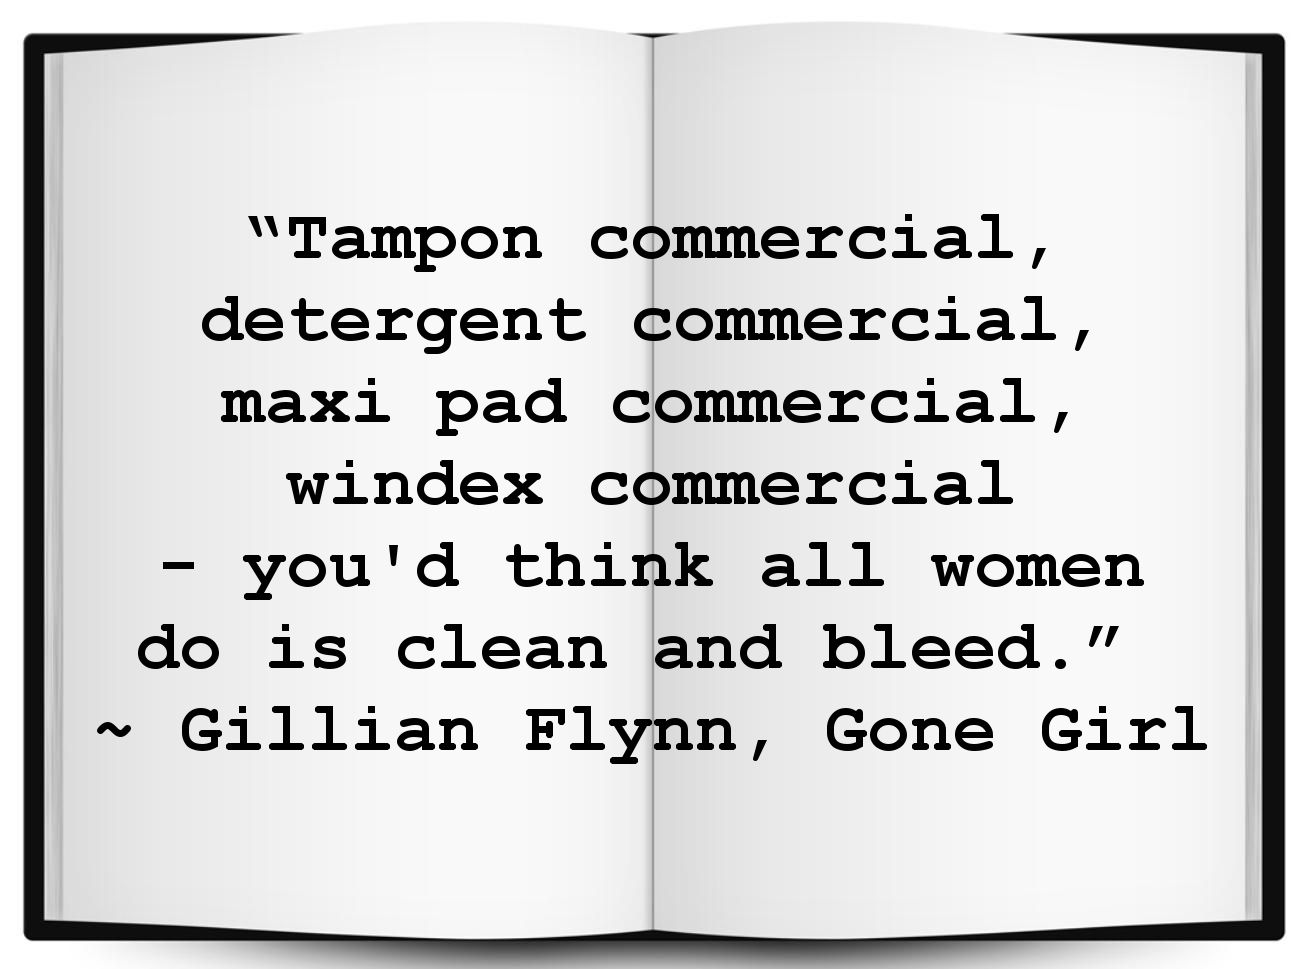 Commercial Quotes Tampon Commercial Detergent Commercial Maxi Pad Commercial